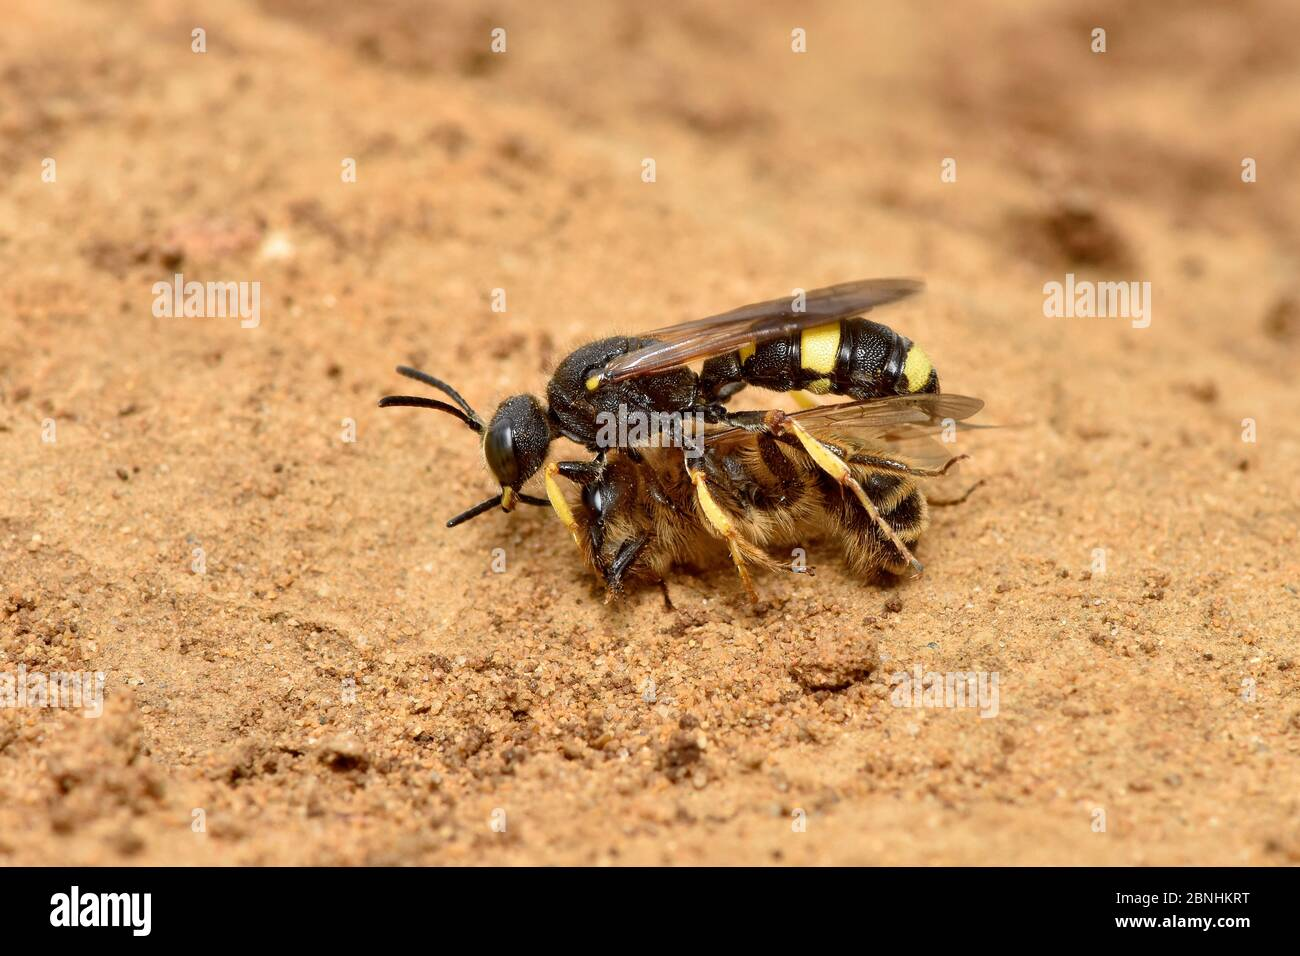 Digger wasp (Cerceris rybyensis) carrying paralysed Mining bee (Andrena flavipes) back to burrow where the victim will be eaten by the wasp larvae, Su Stock Photo